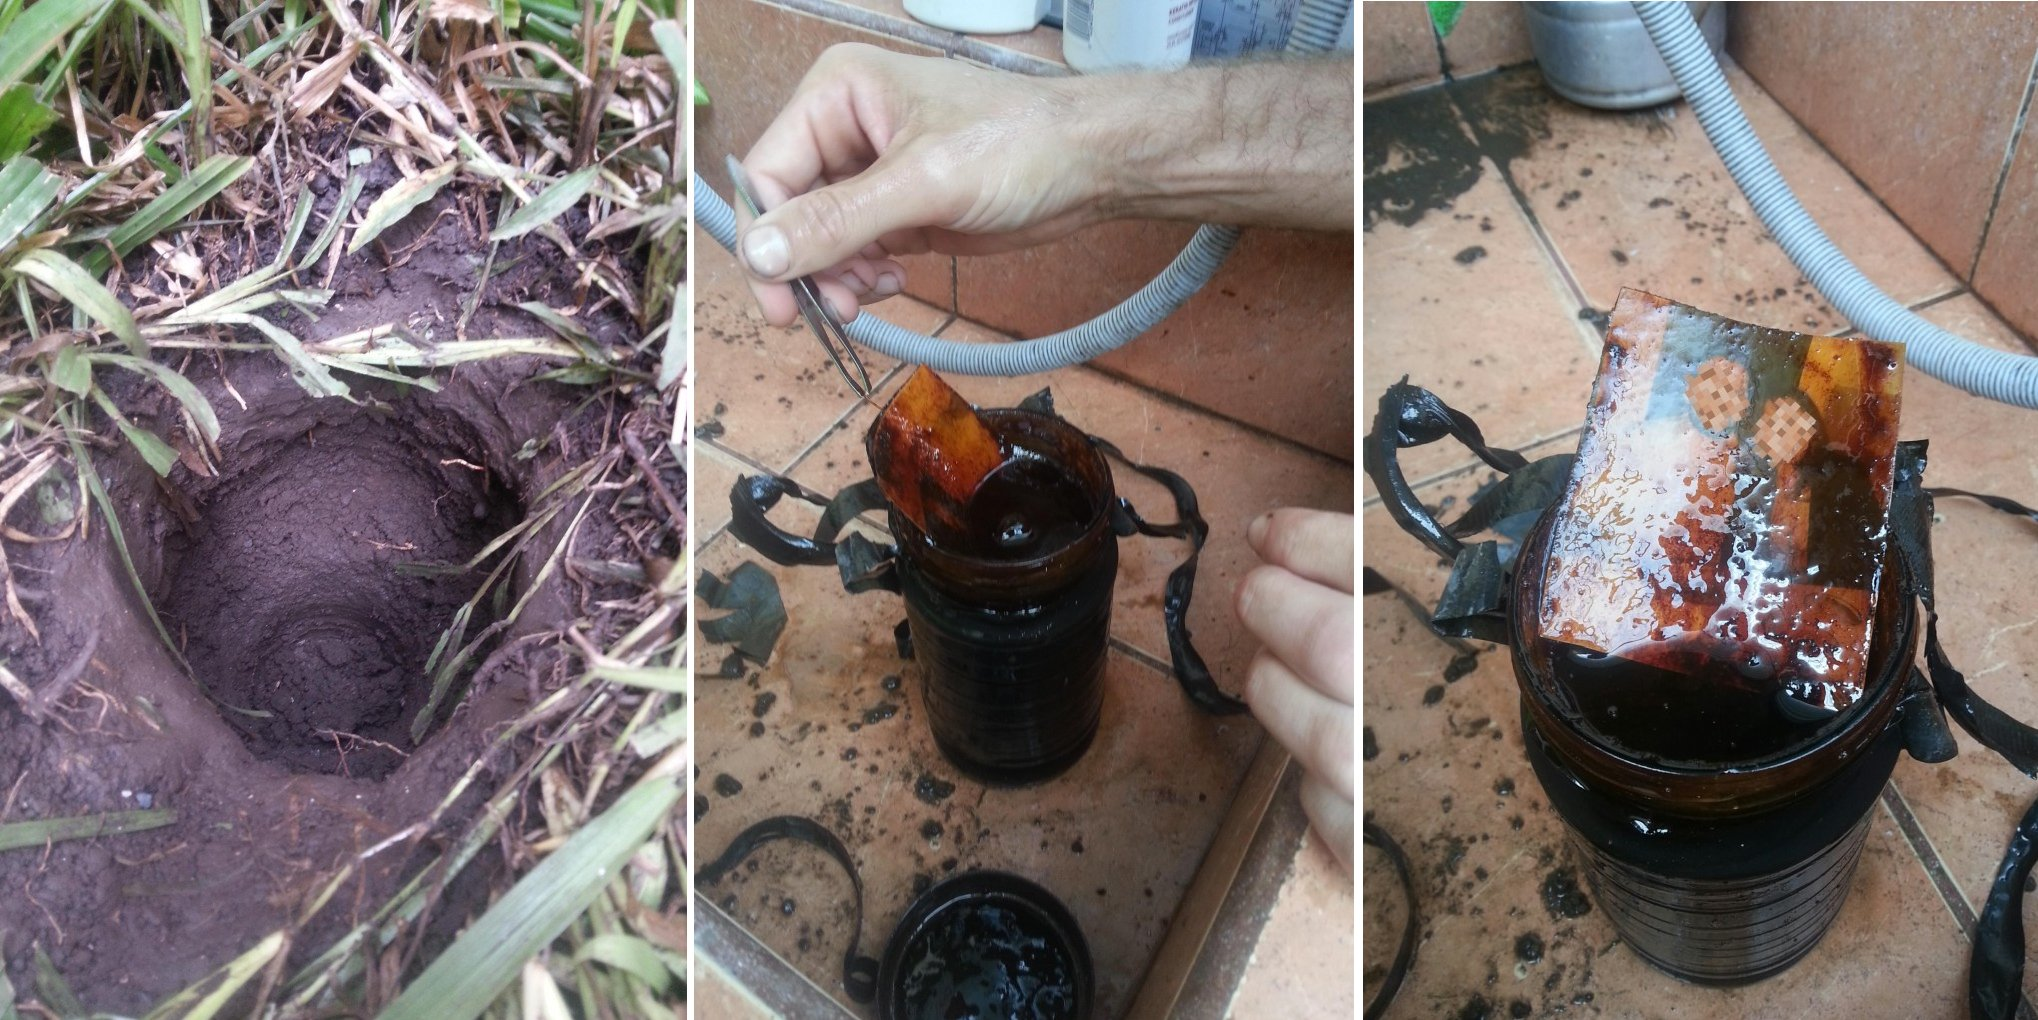 Couple Were Gardening When They Found Something Super Eerie - World Of Buzz